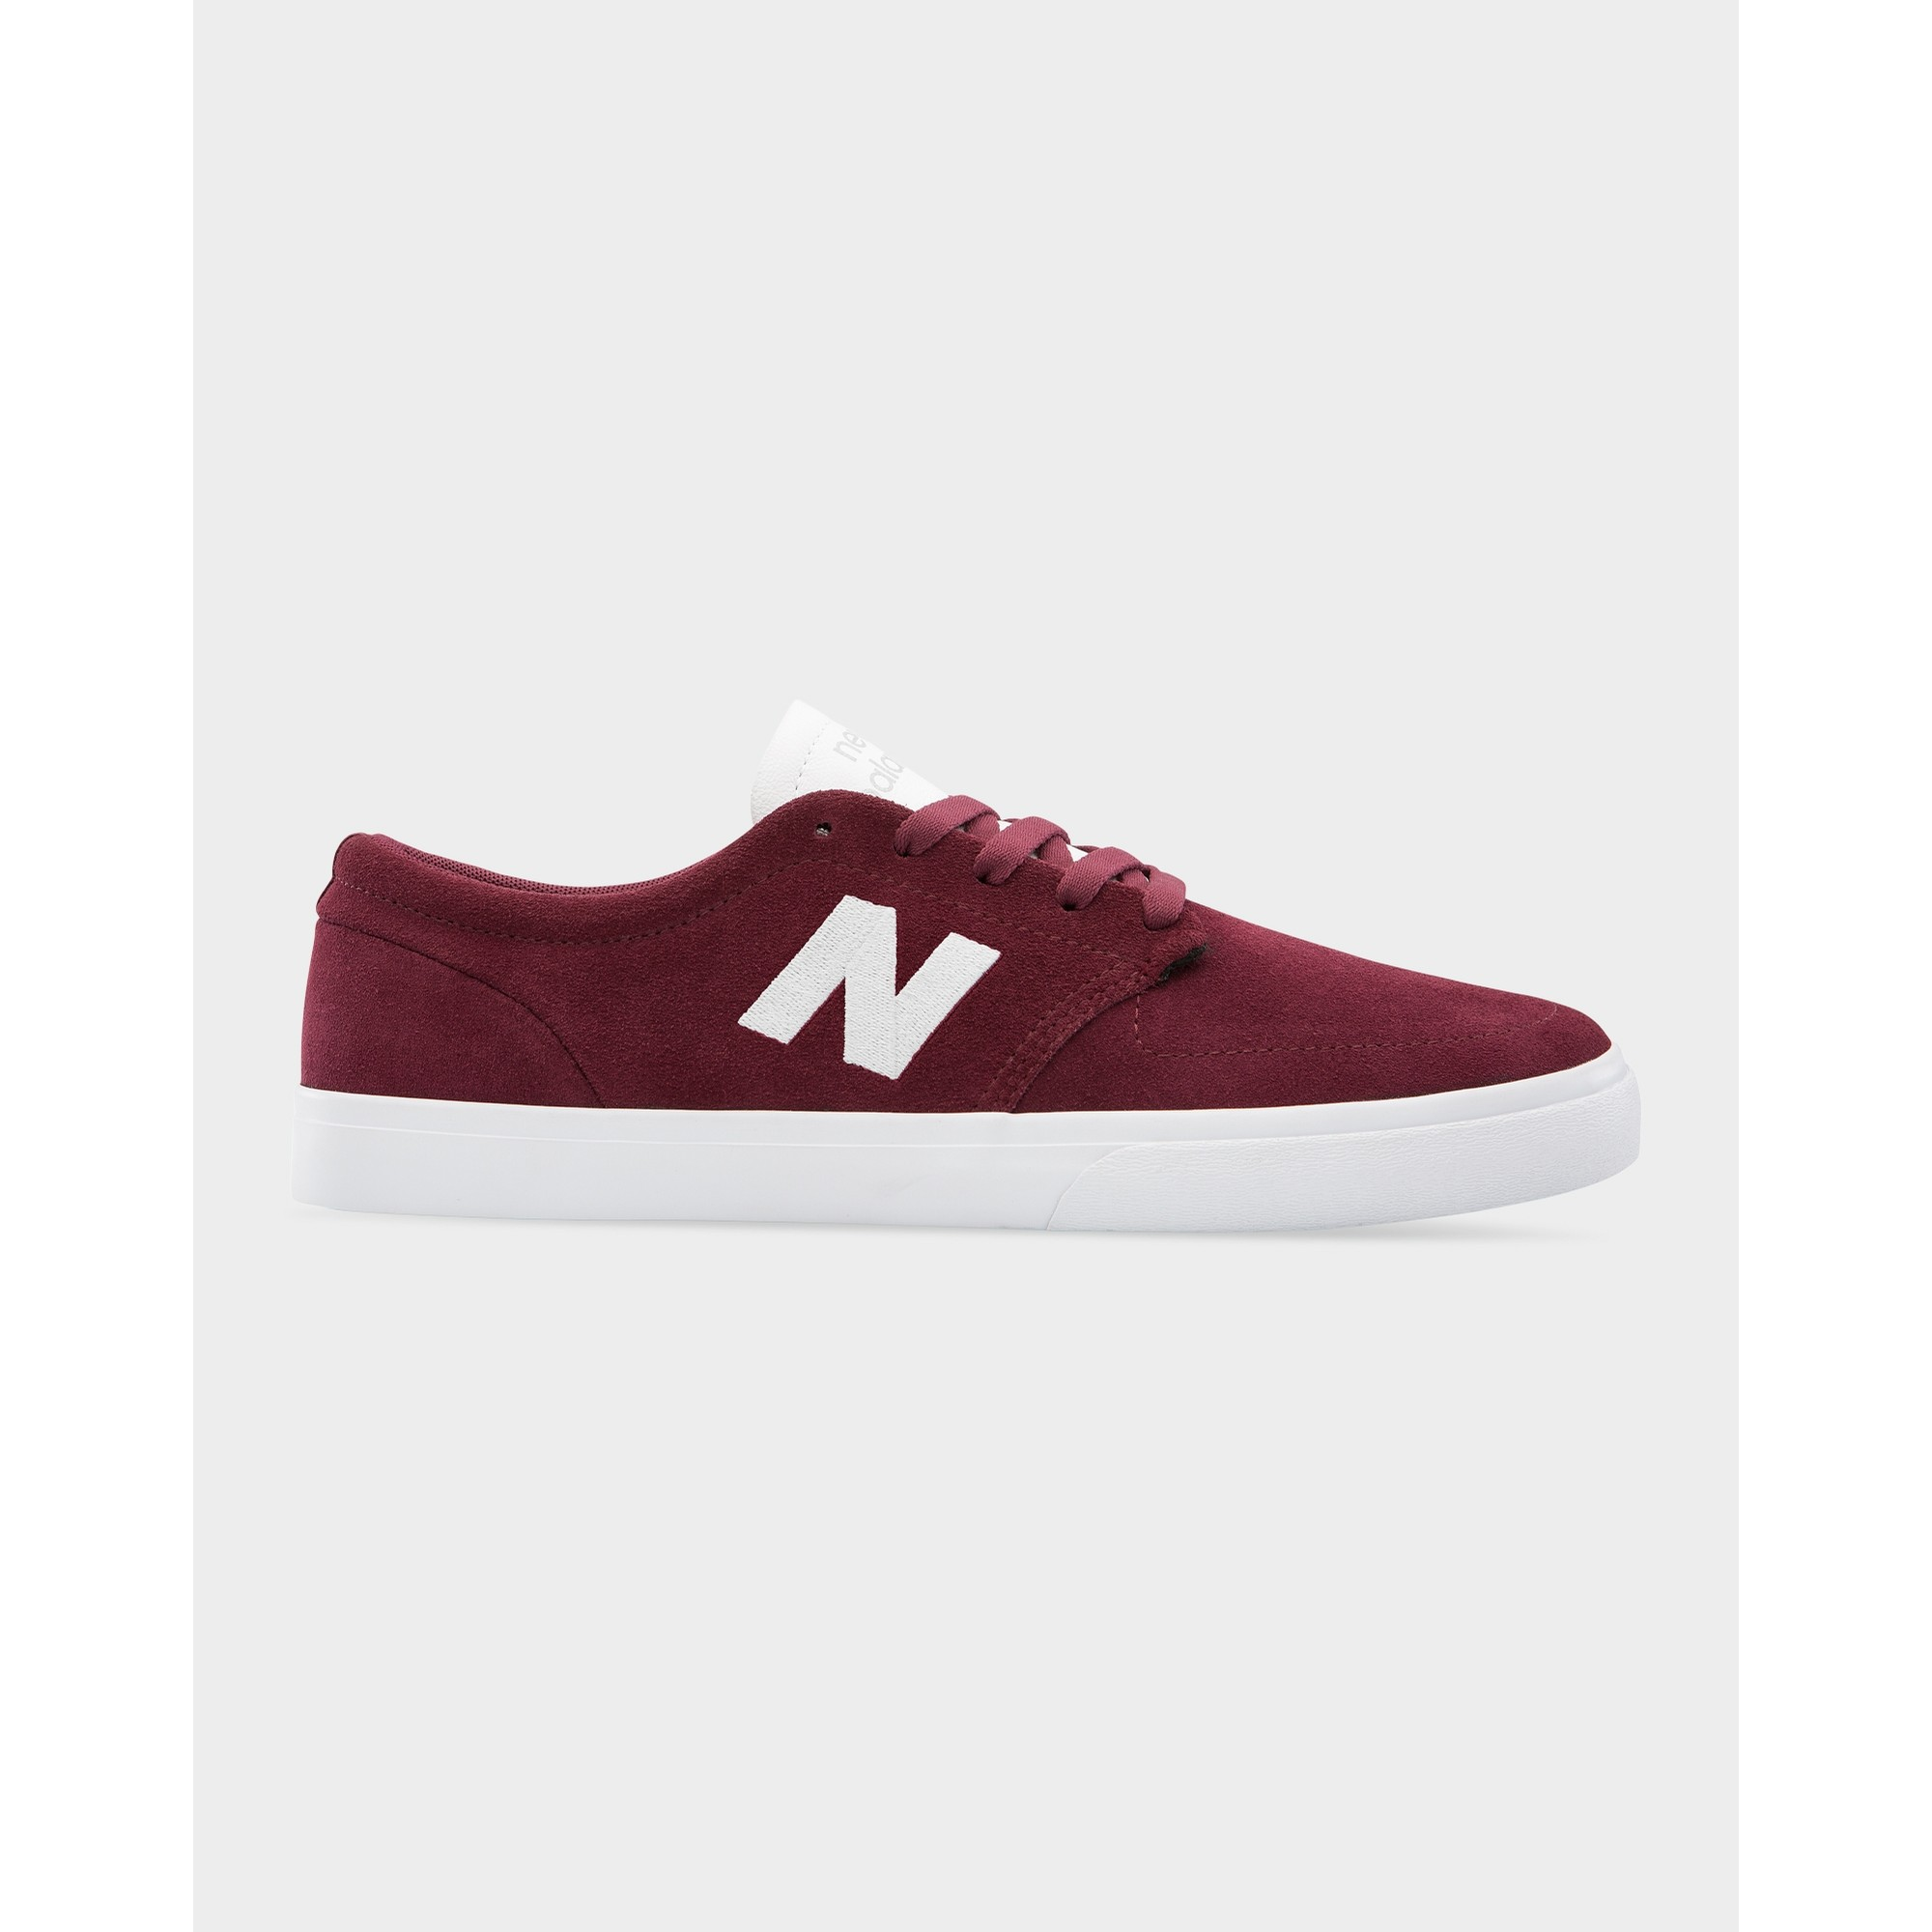 NM 345 TOR (Burgundy/White)